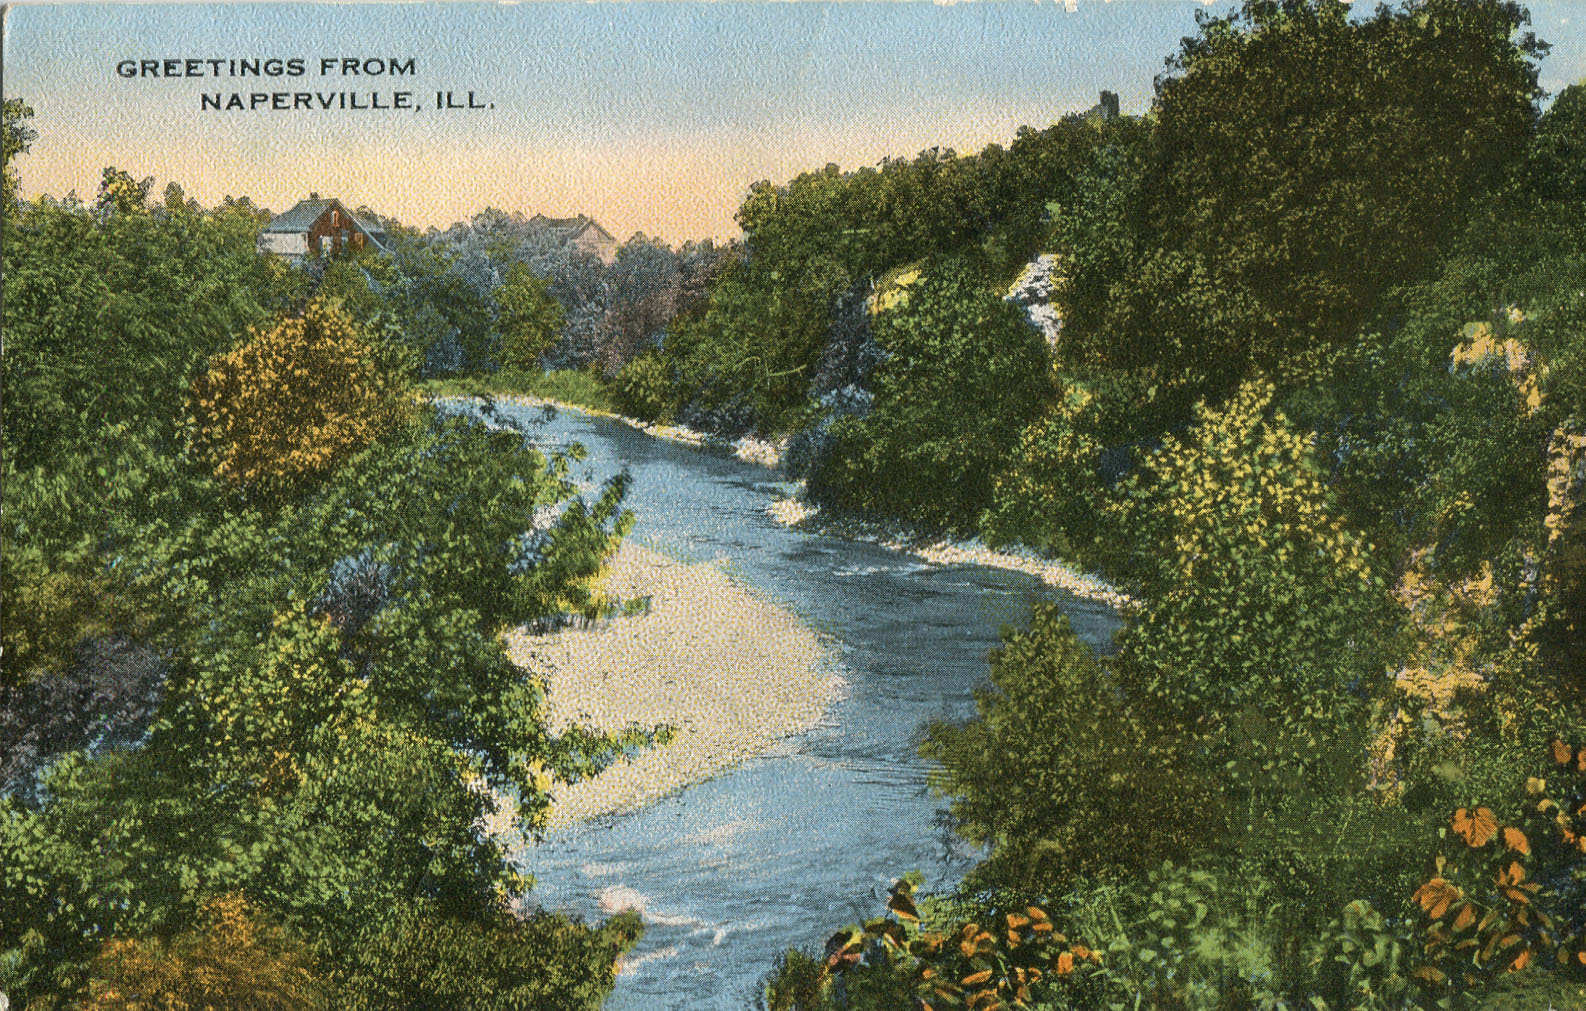 Postcard of river scene